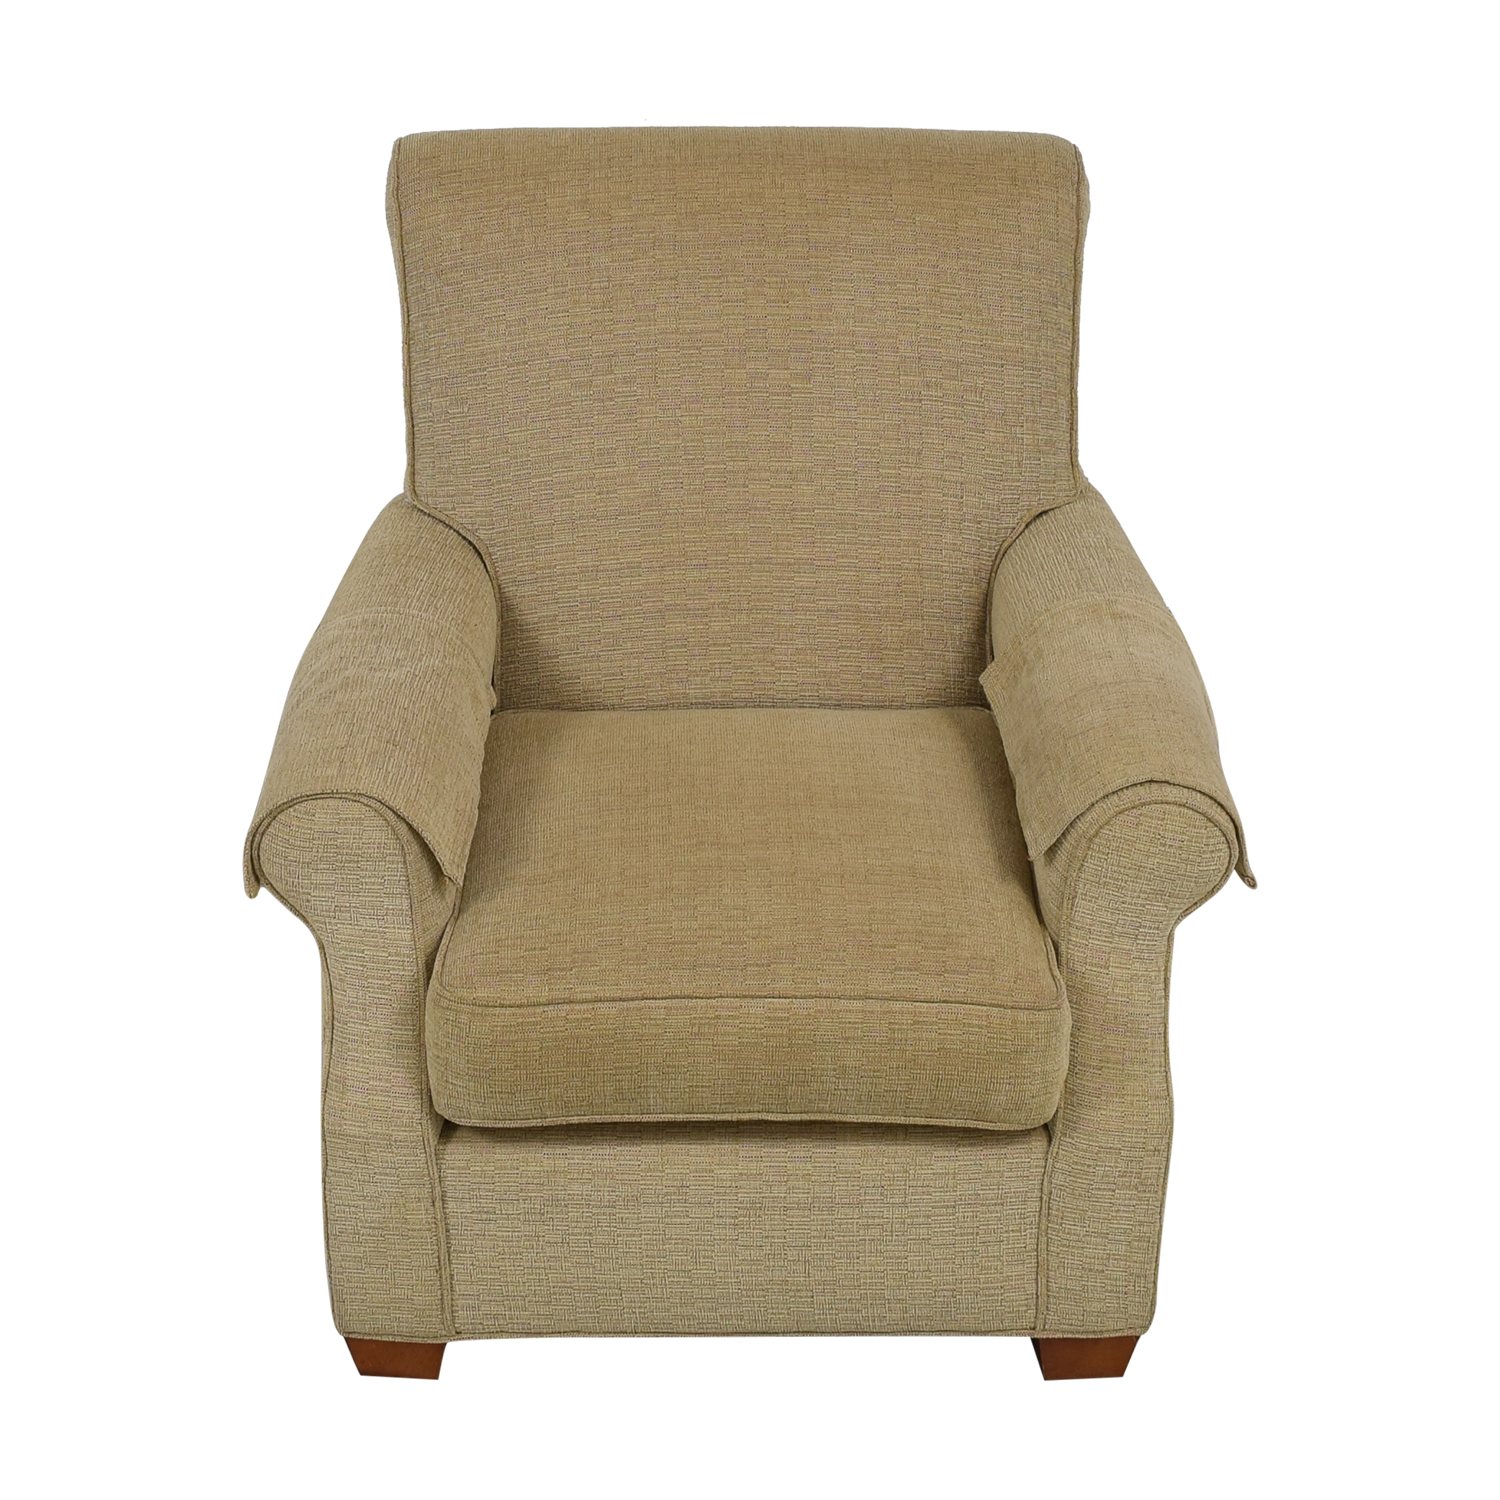 Macy's Macy's Upholstered Accent Chair tan